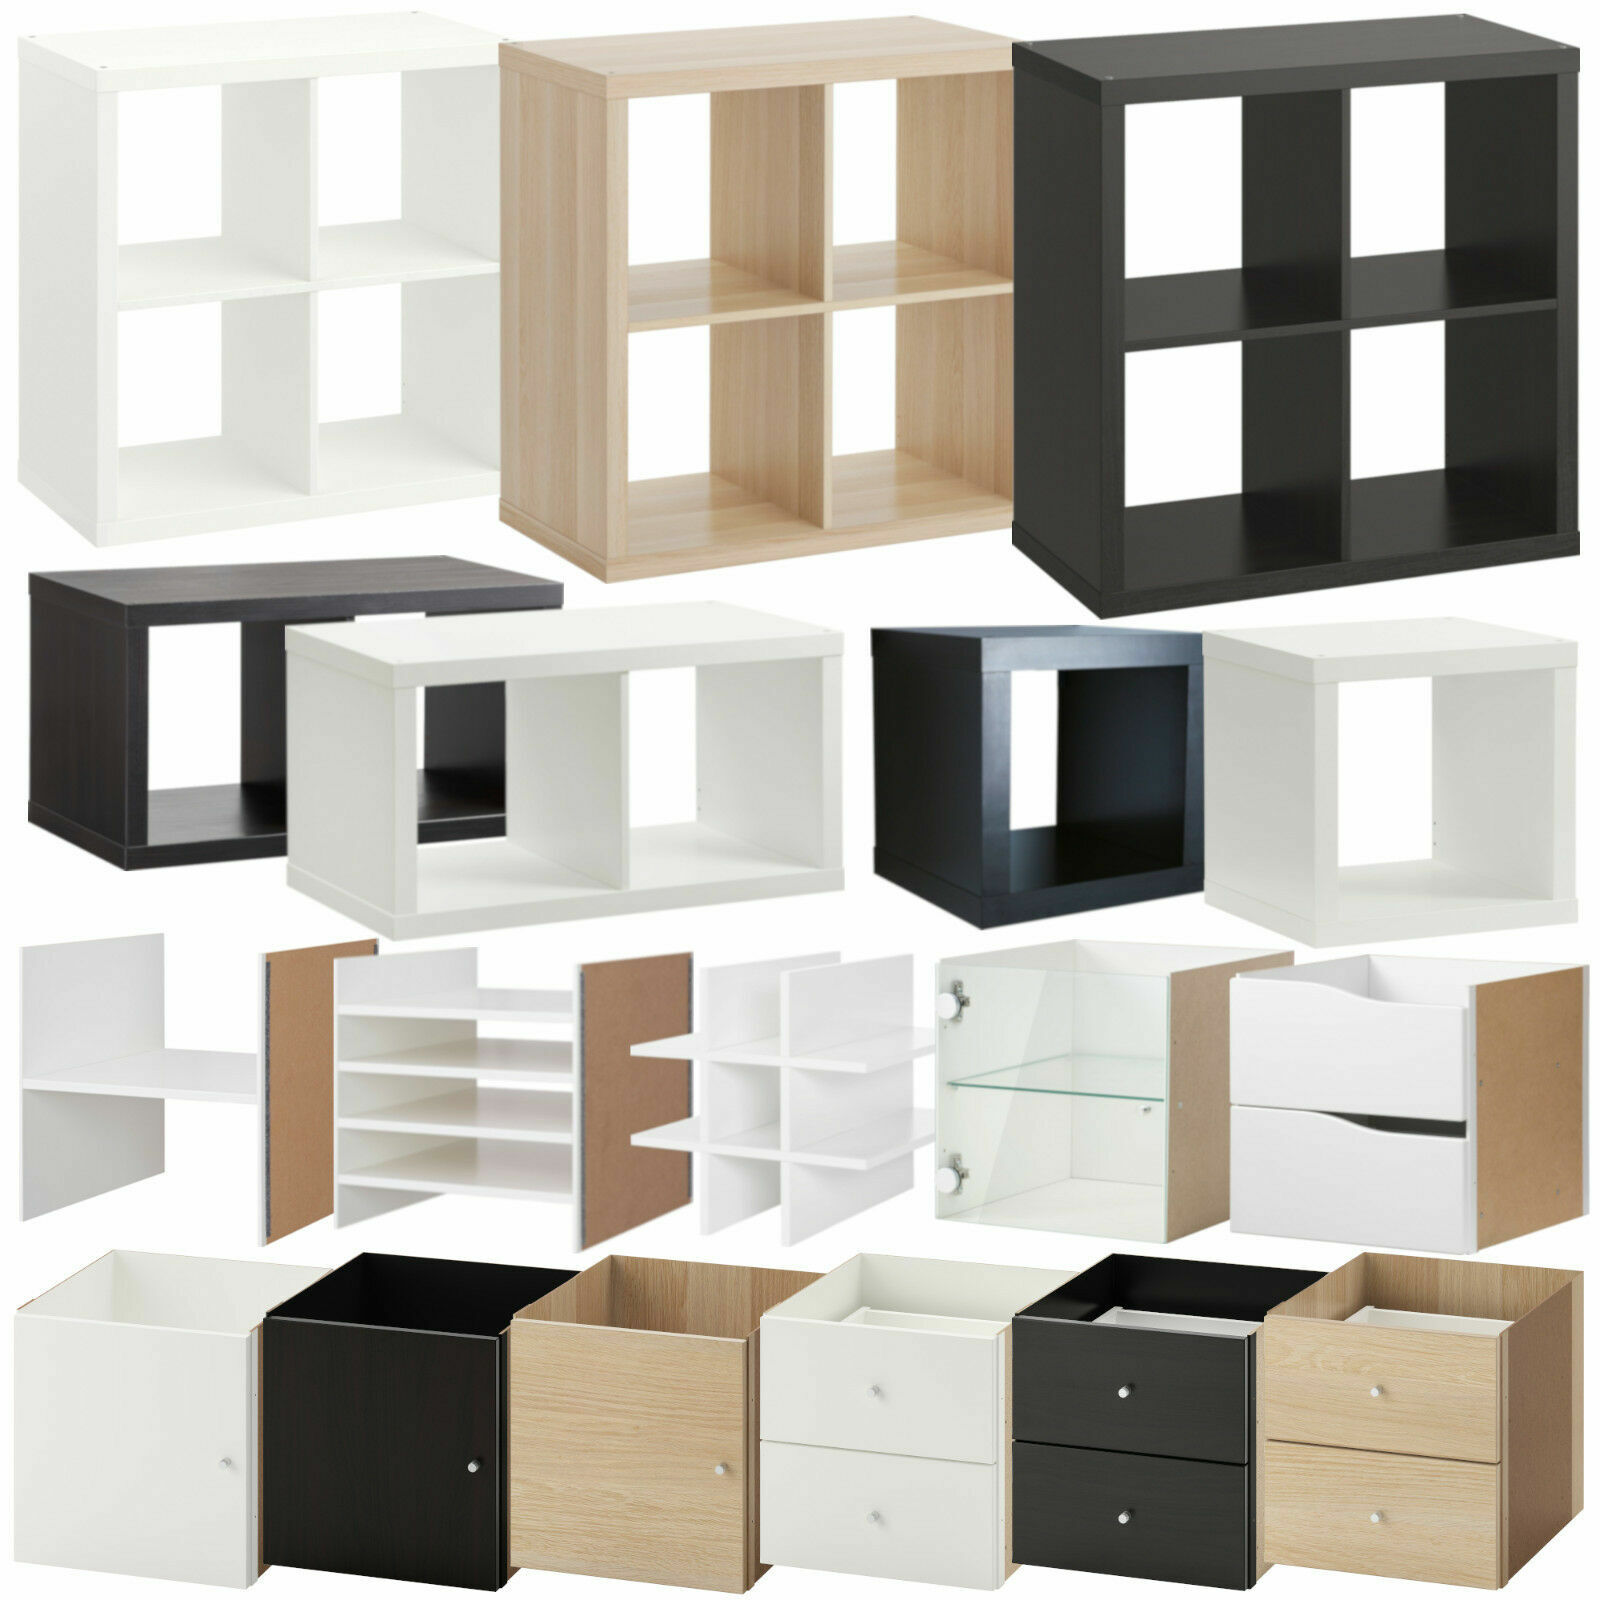 ikea kallax regal wei birke schwarzbraun 1 2 4 fach t r schublade ehem expedit eur 14 95. Black Bedroom Furniture Sets. Home Design Ideas